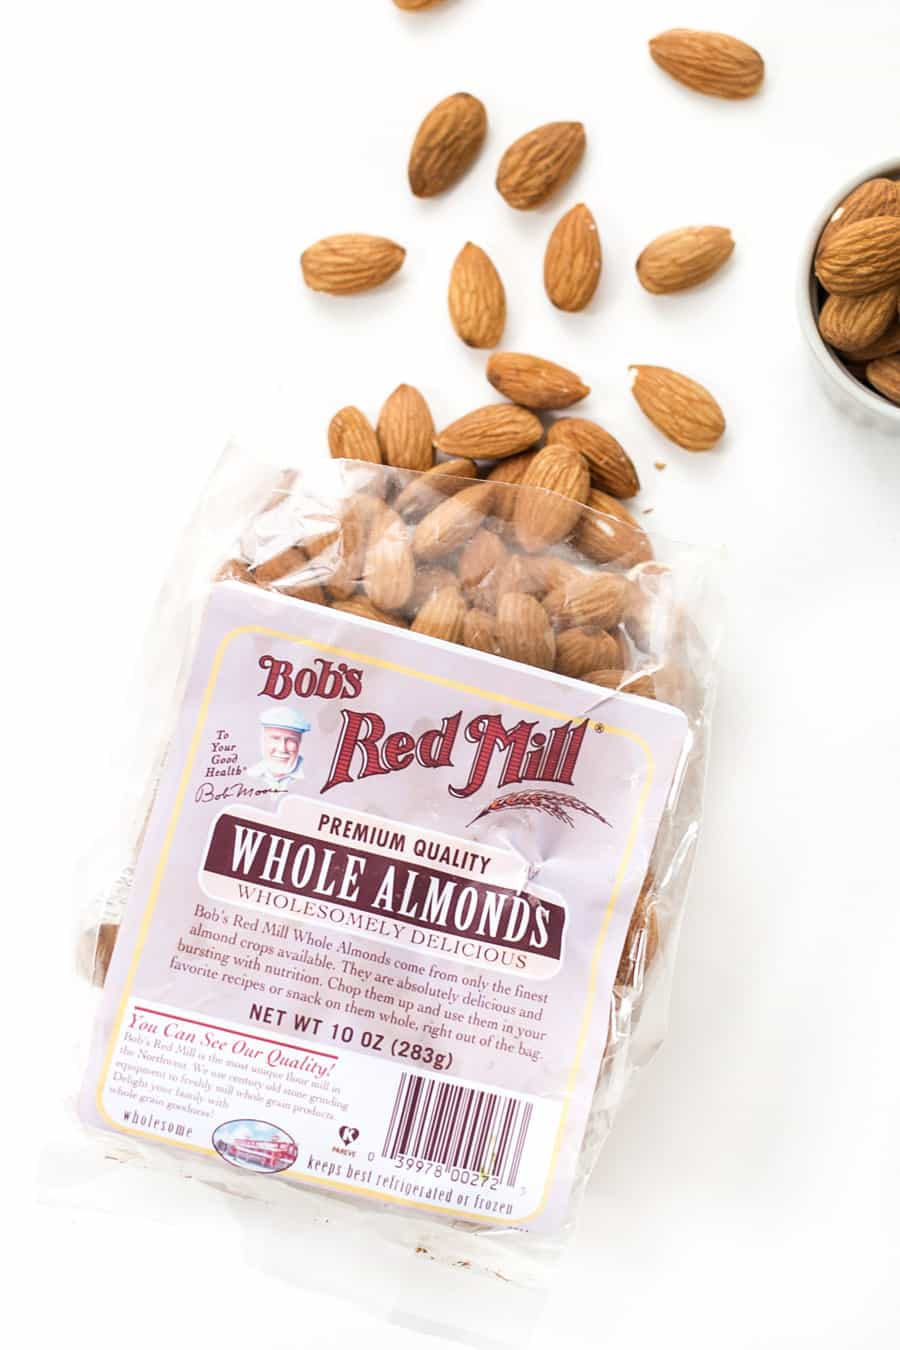 The BEST whole almonds come from Bob's Red Mill!